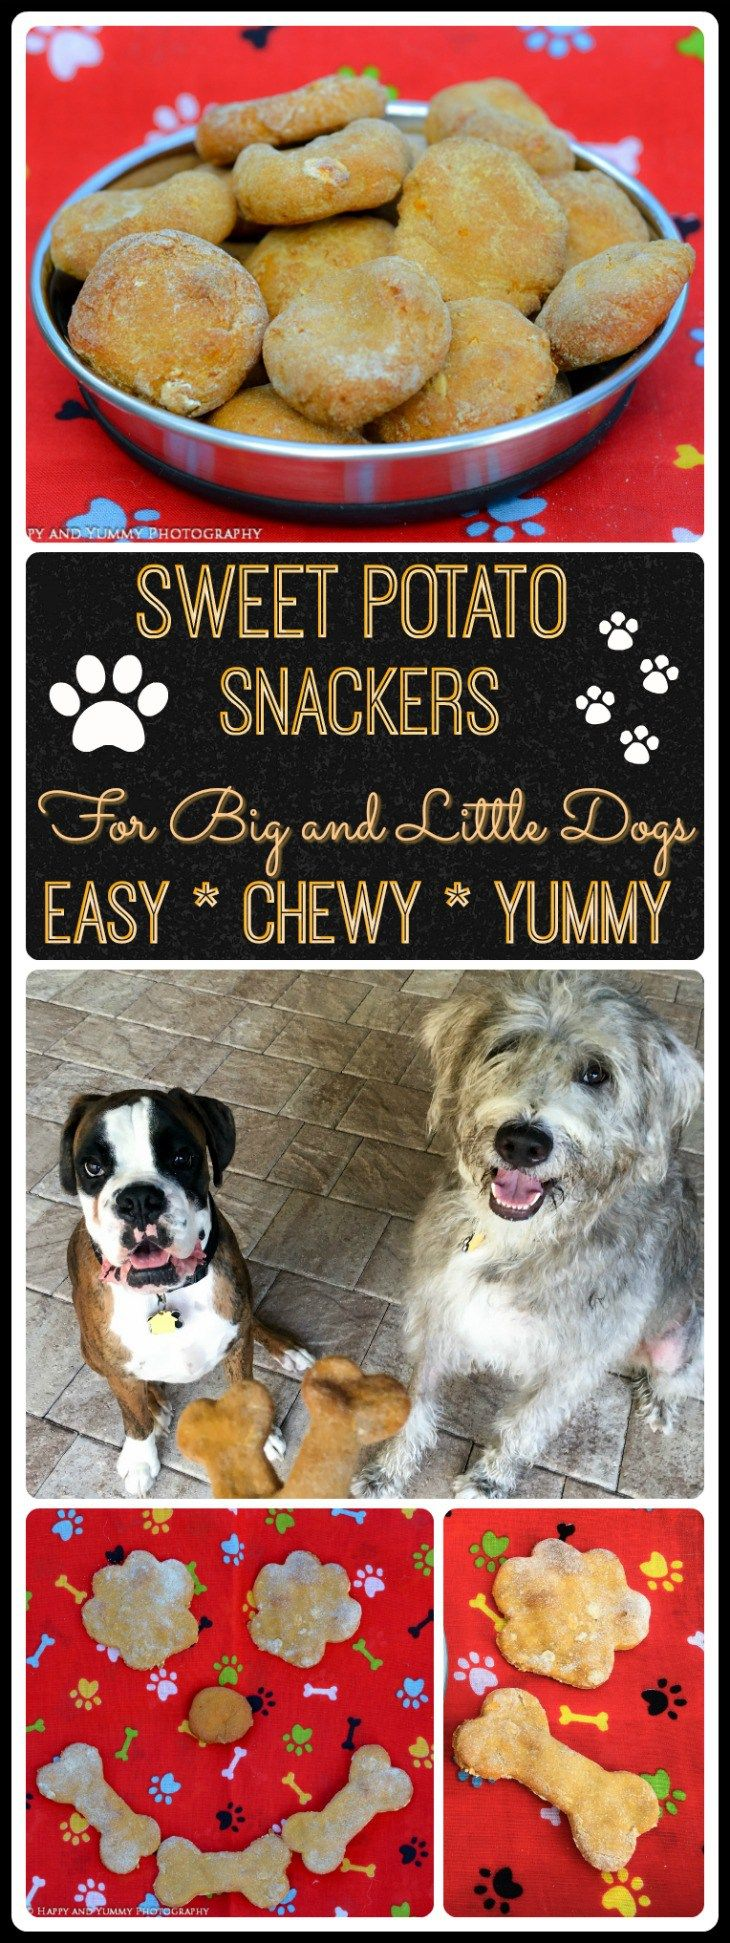 Sweet Potato Snackers for Dogs Recipe Sweet potatoes